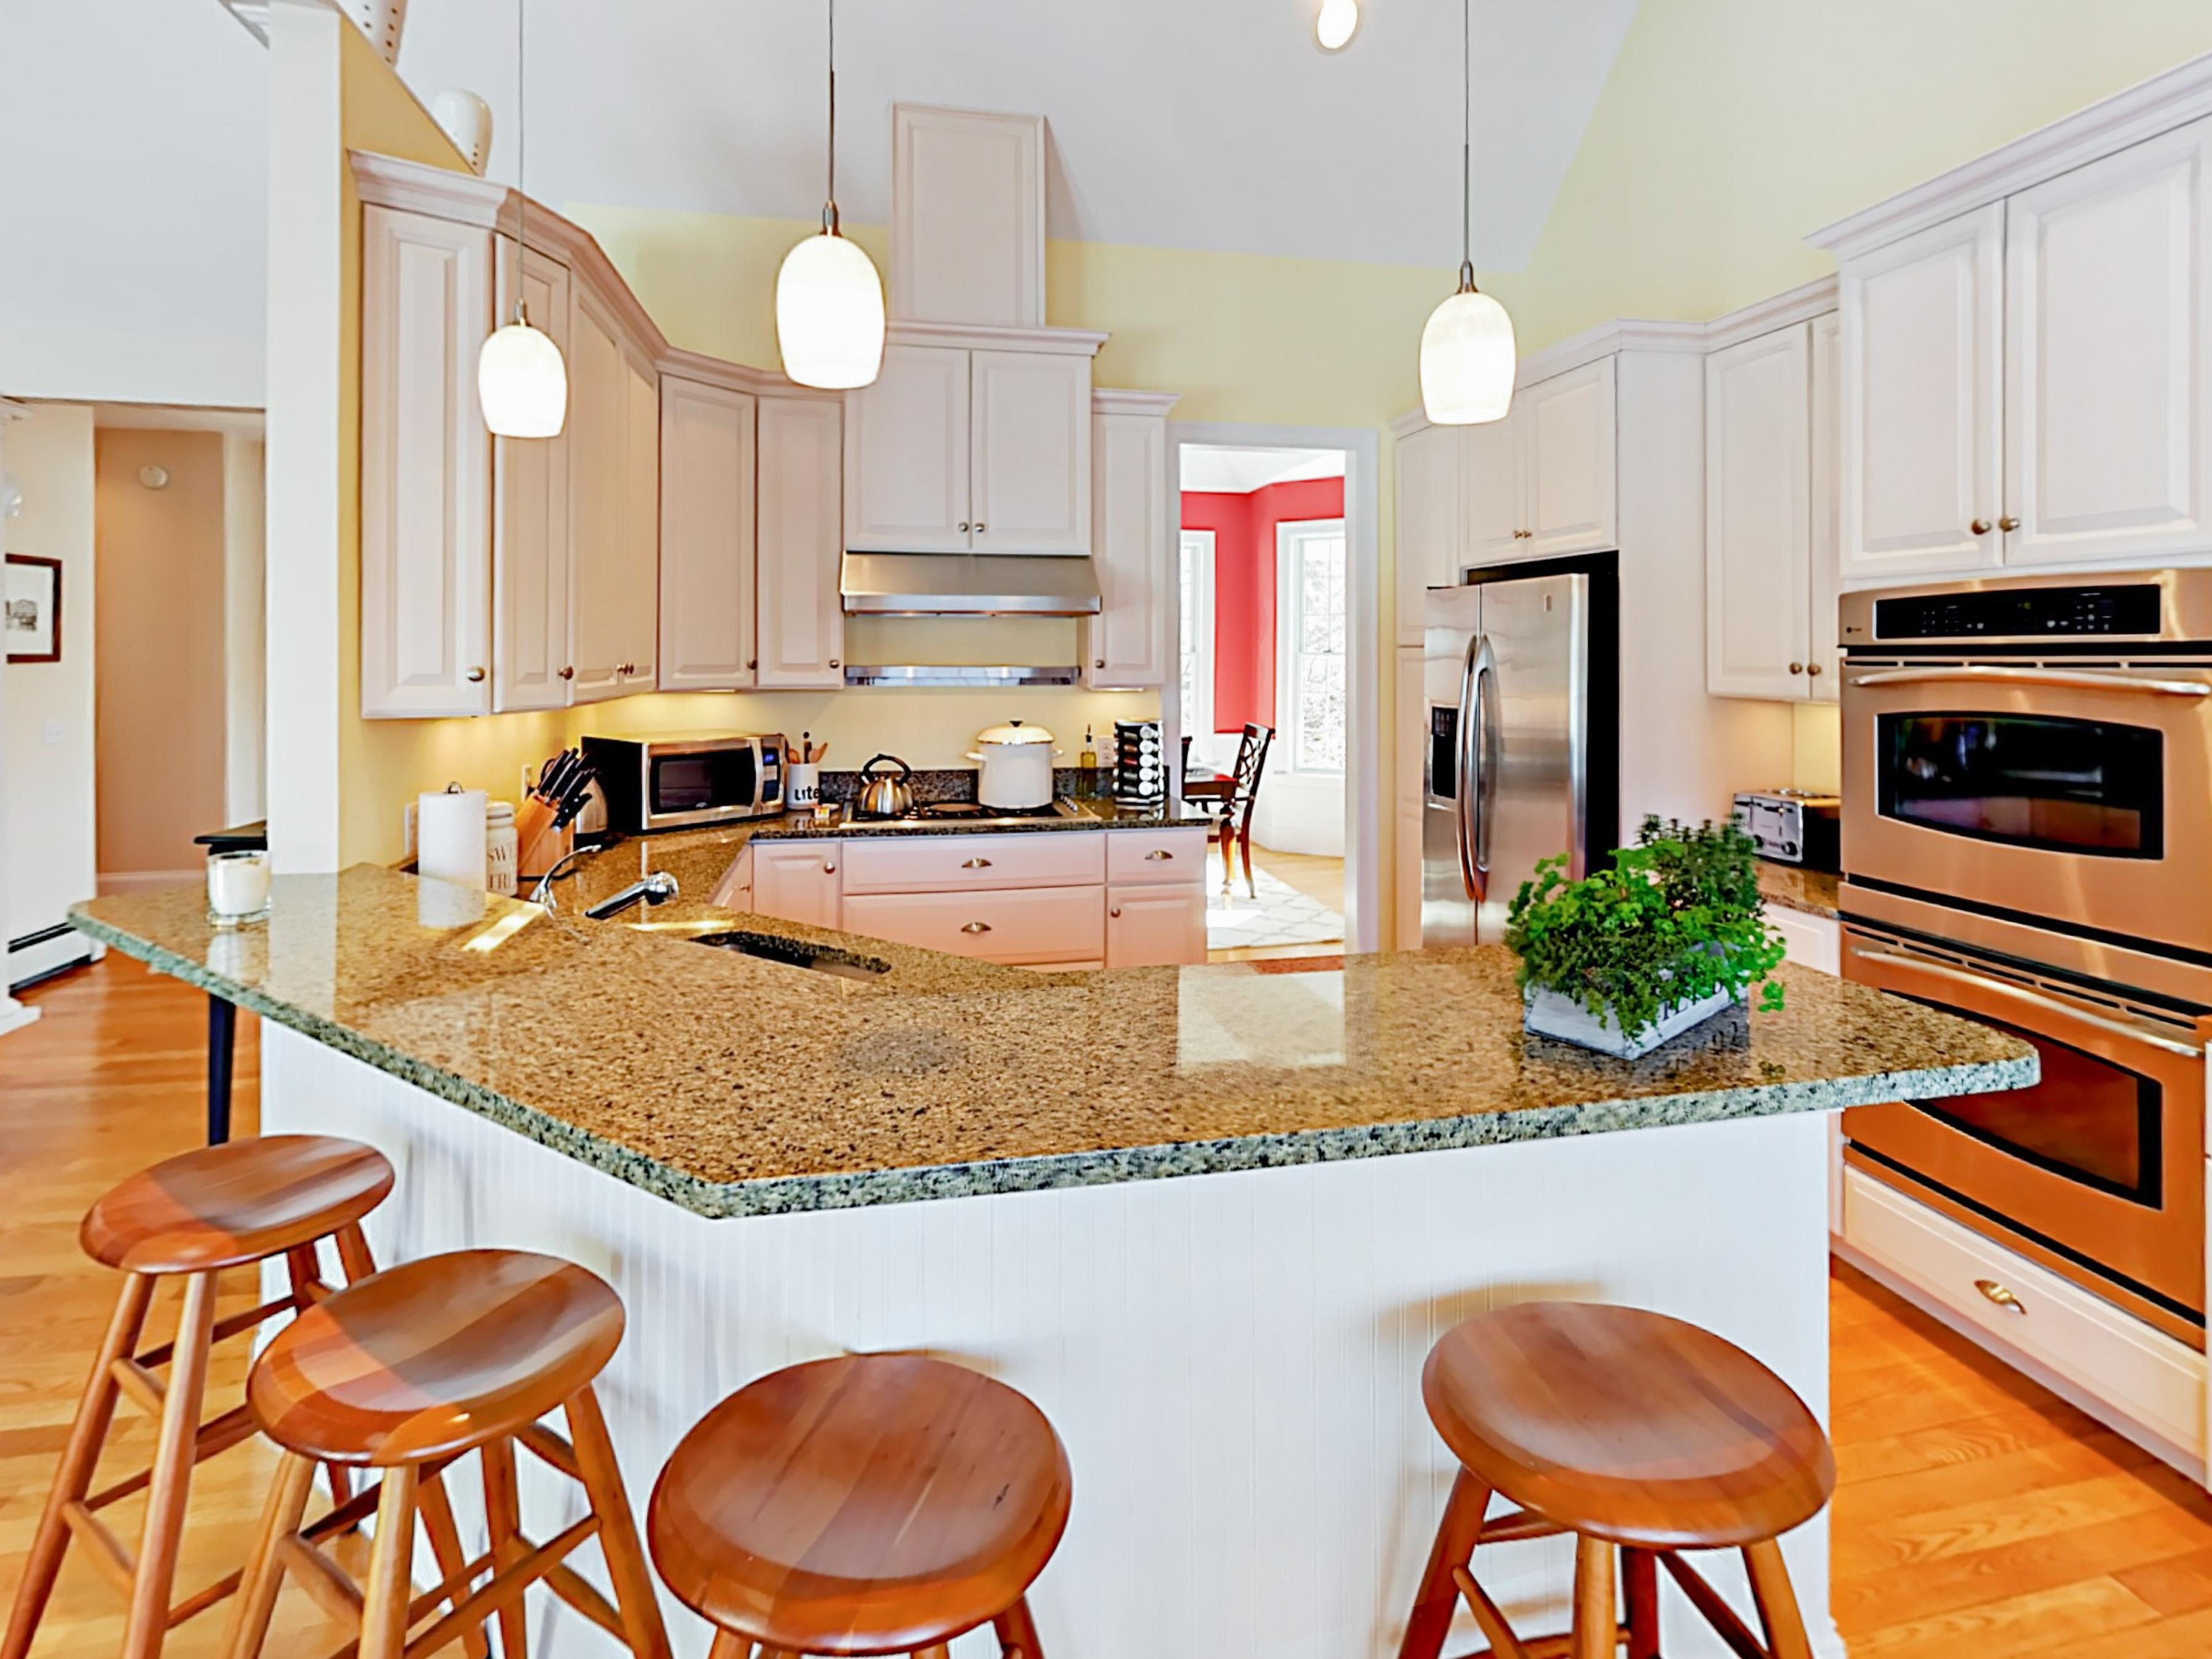 Granite-lined kitchen with stainless steel appliances and breakfast bar for 4.